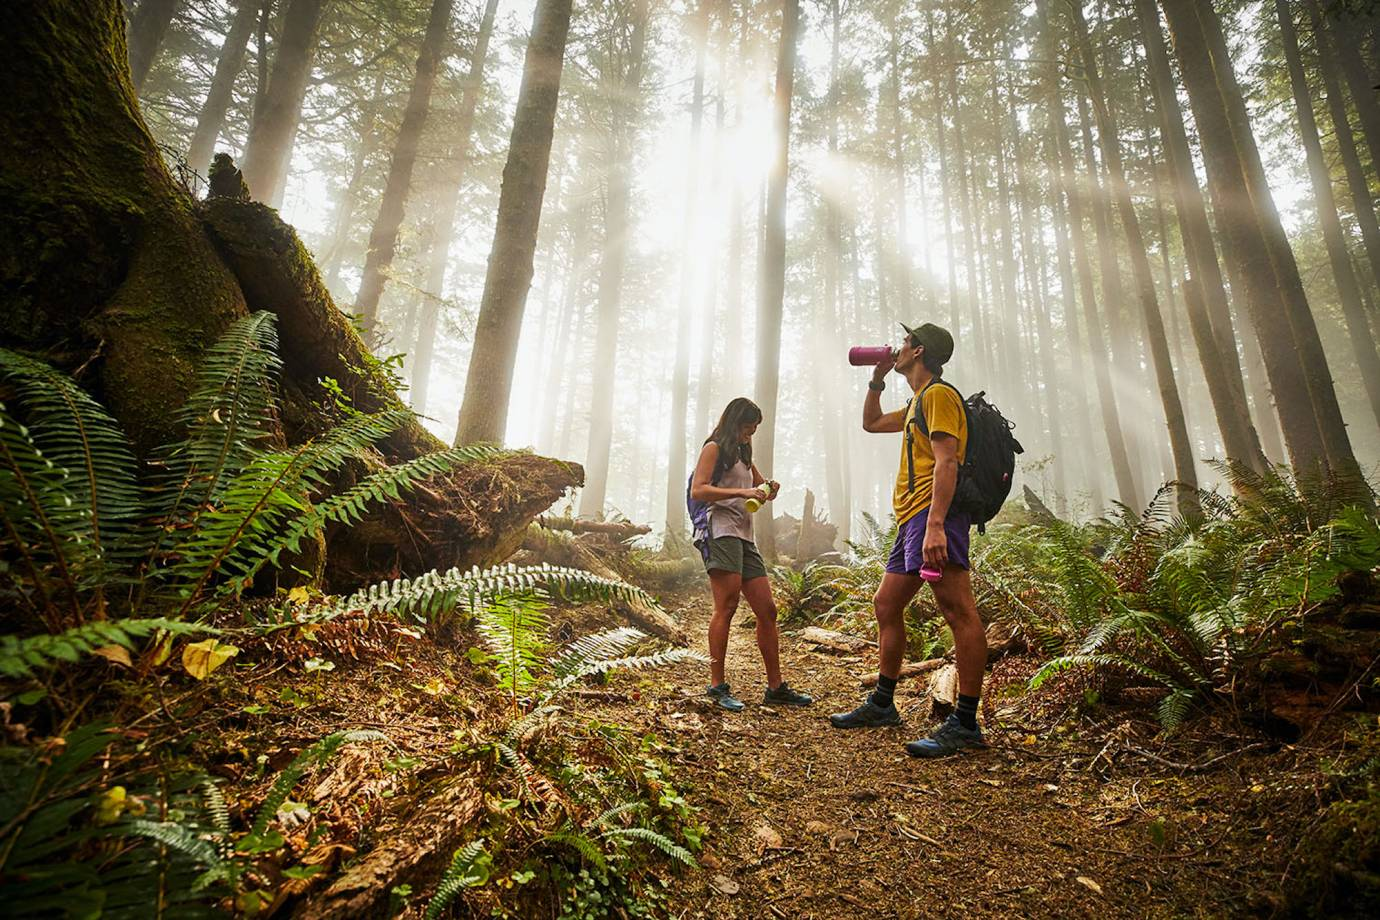 two hikers in shorts on a forest trail